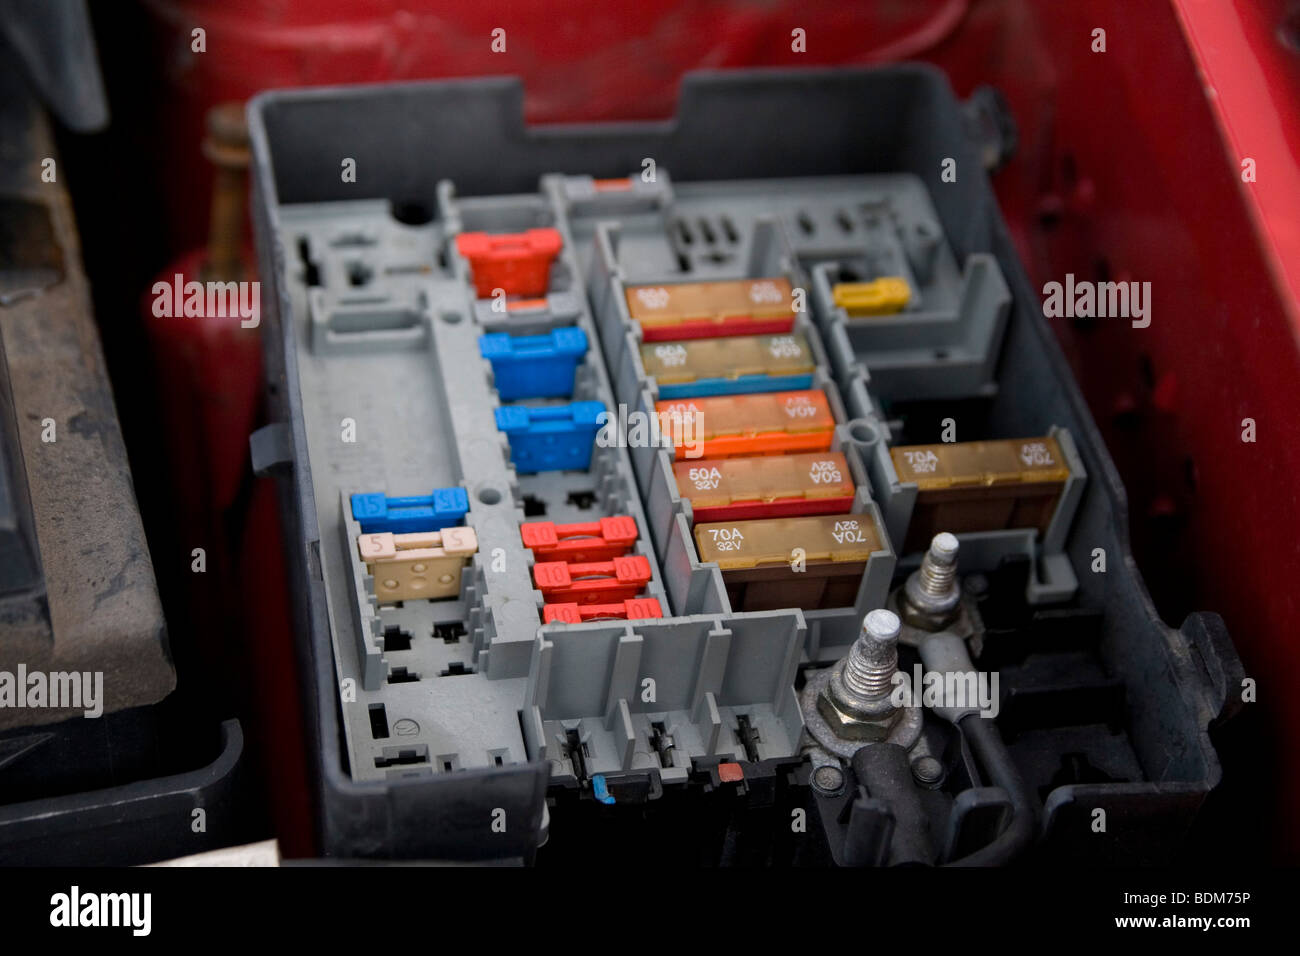 citroen berlingo fuse box BDM75P citroen berlingo fuse box stock photo, royalty free image citroen berlingo fuse box layout at readyjetset.co